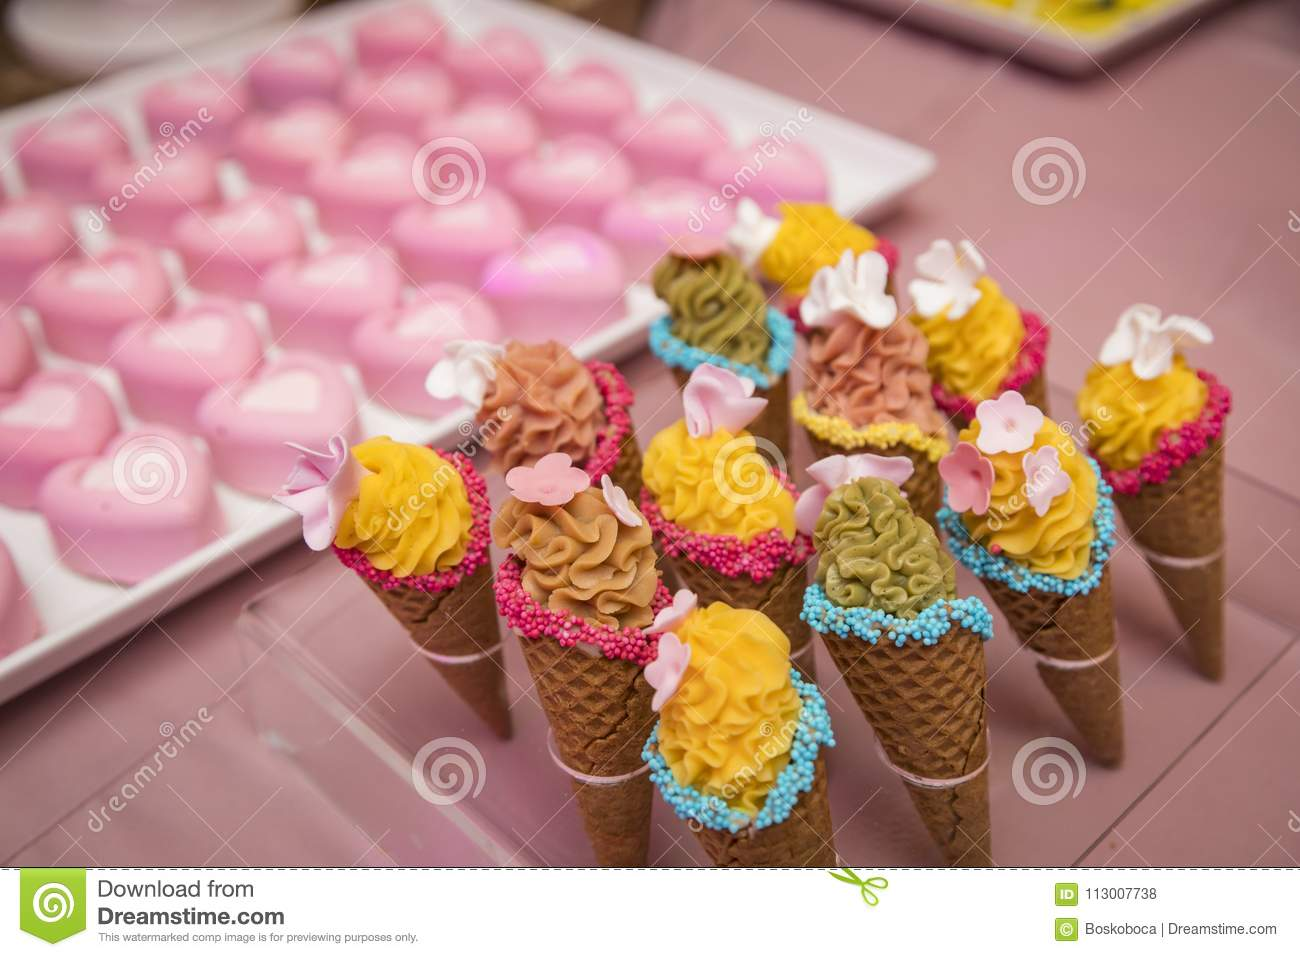 Birthday Party Candy Bar Stock Photo Image Of Marshmallow 113007738